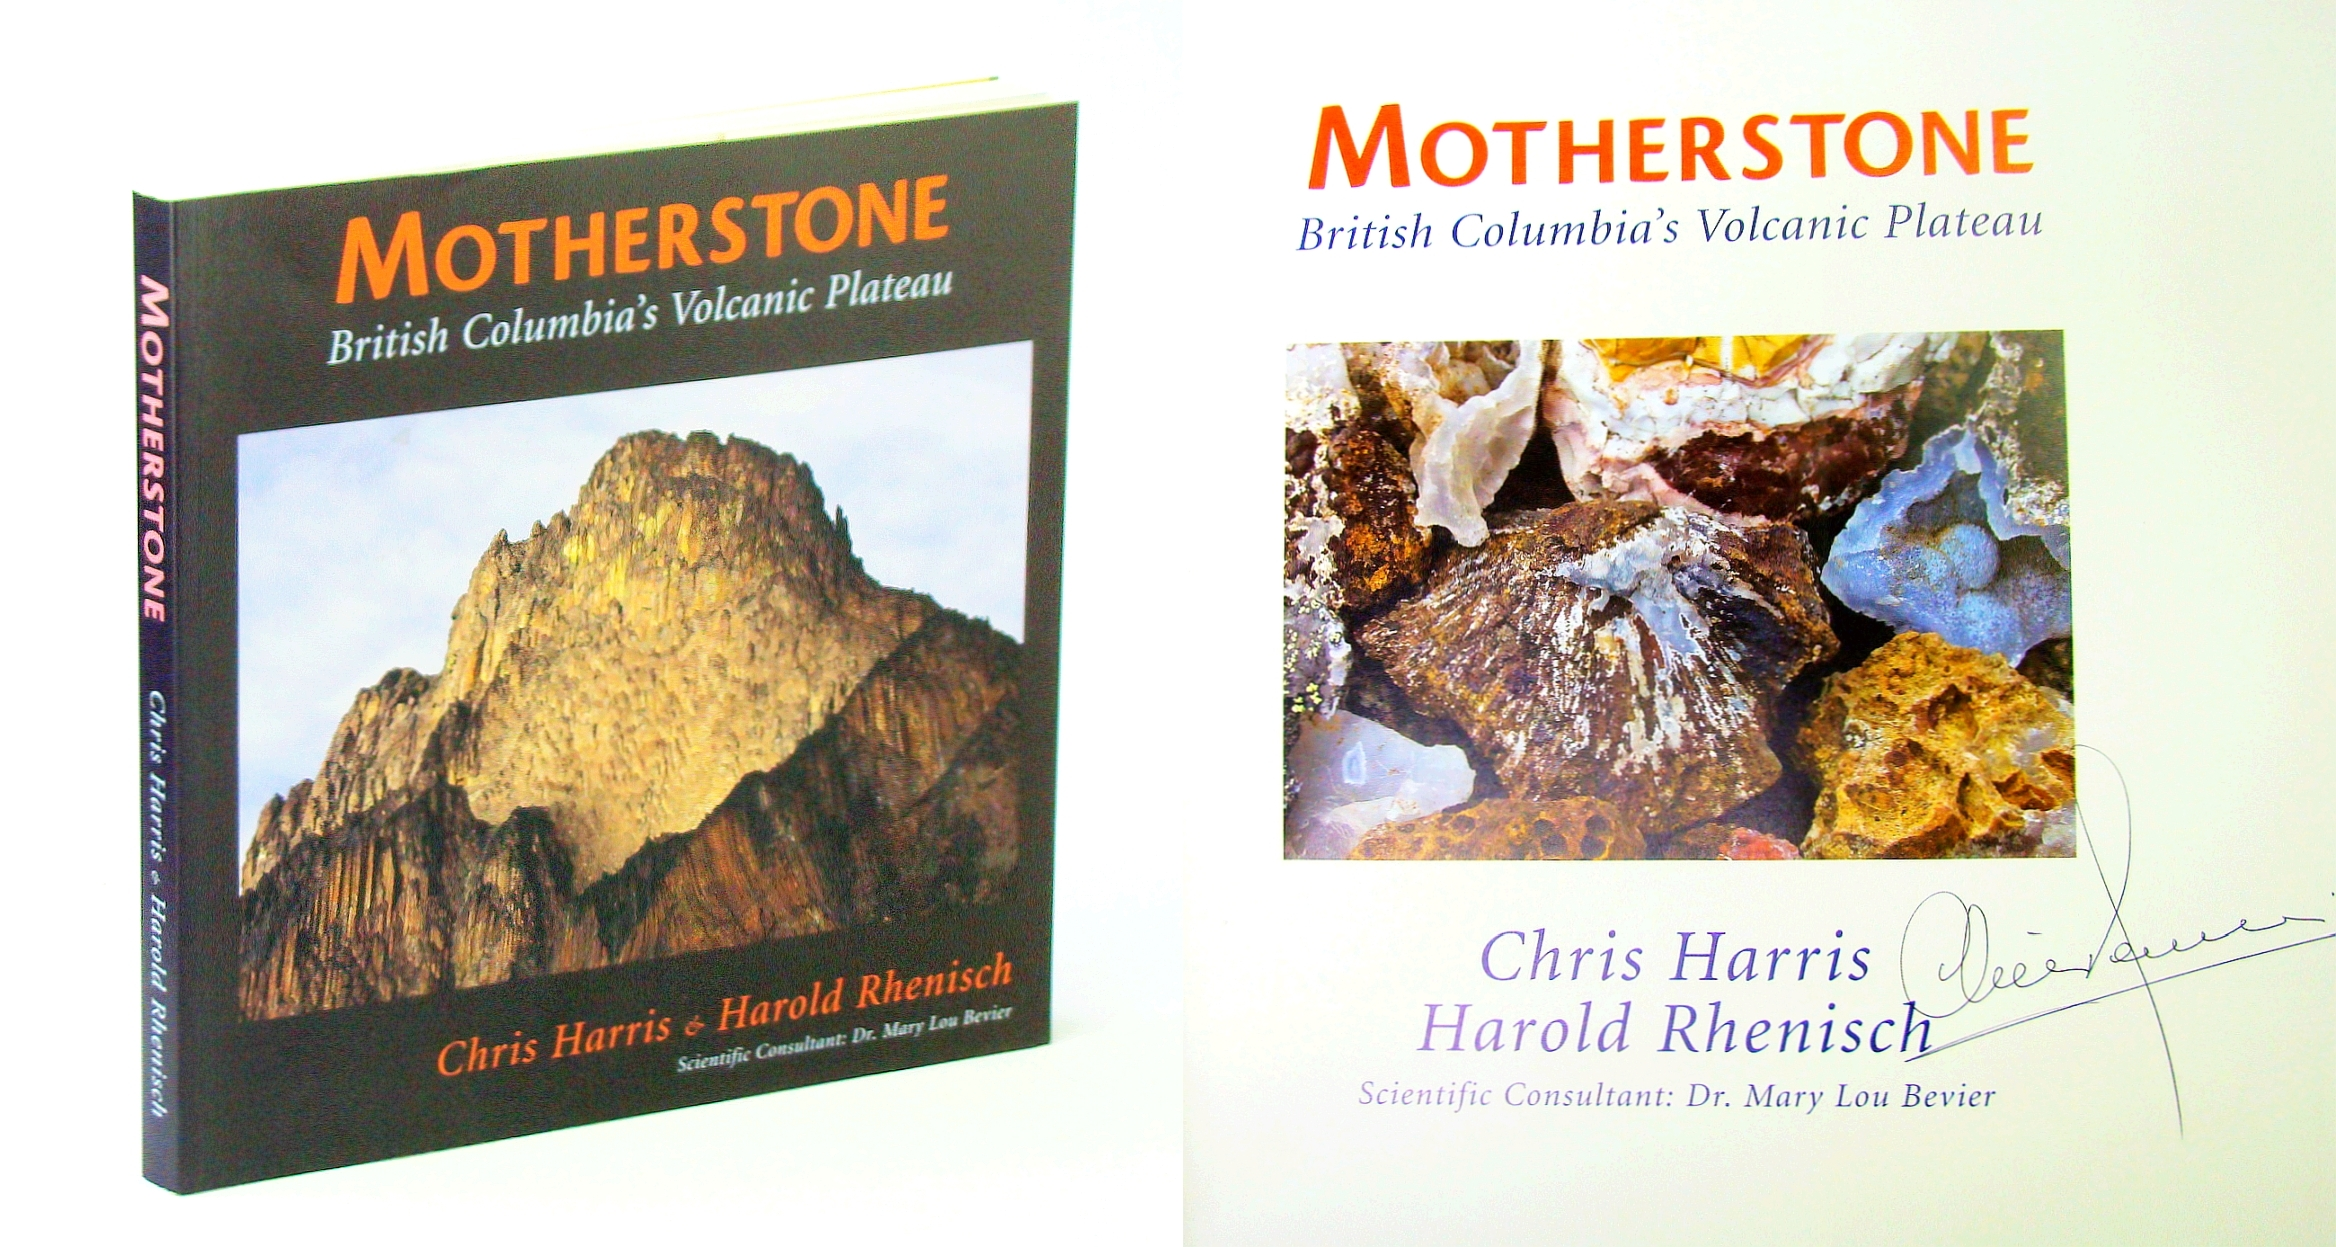 Image for Motherstone - British Columbia's Volcanic Plateau